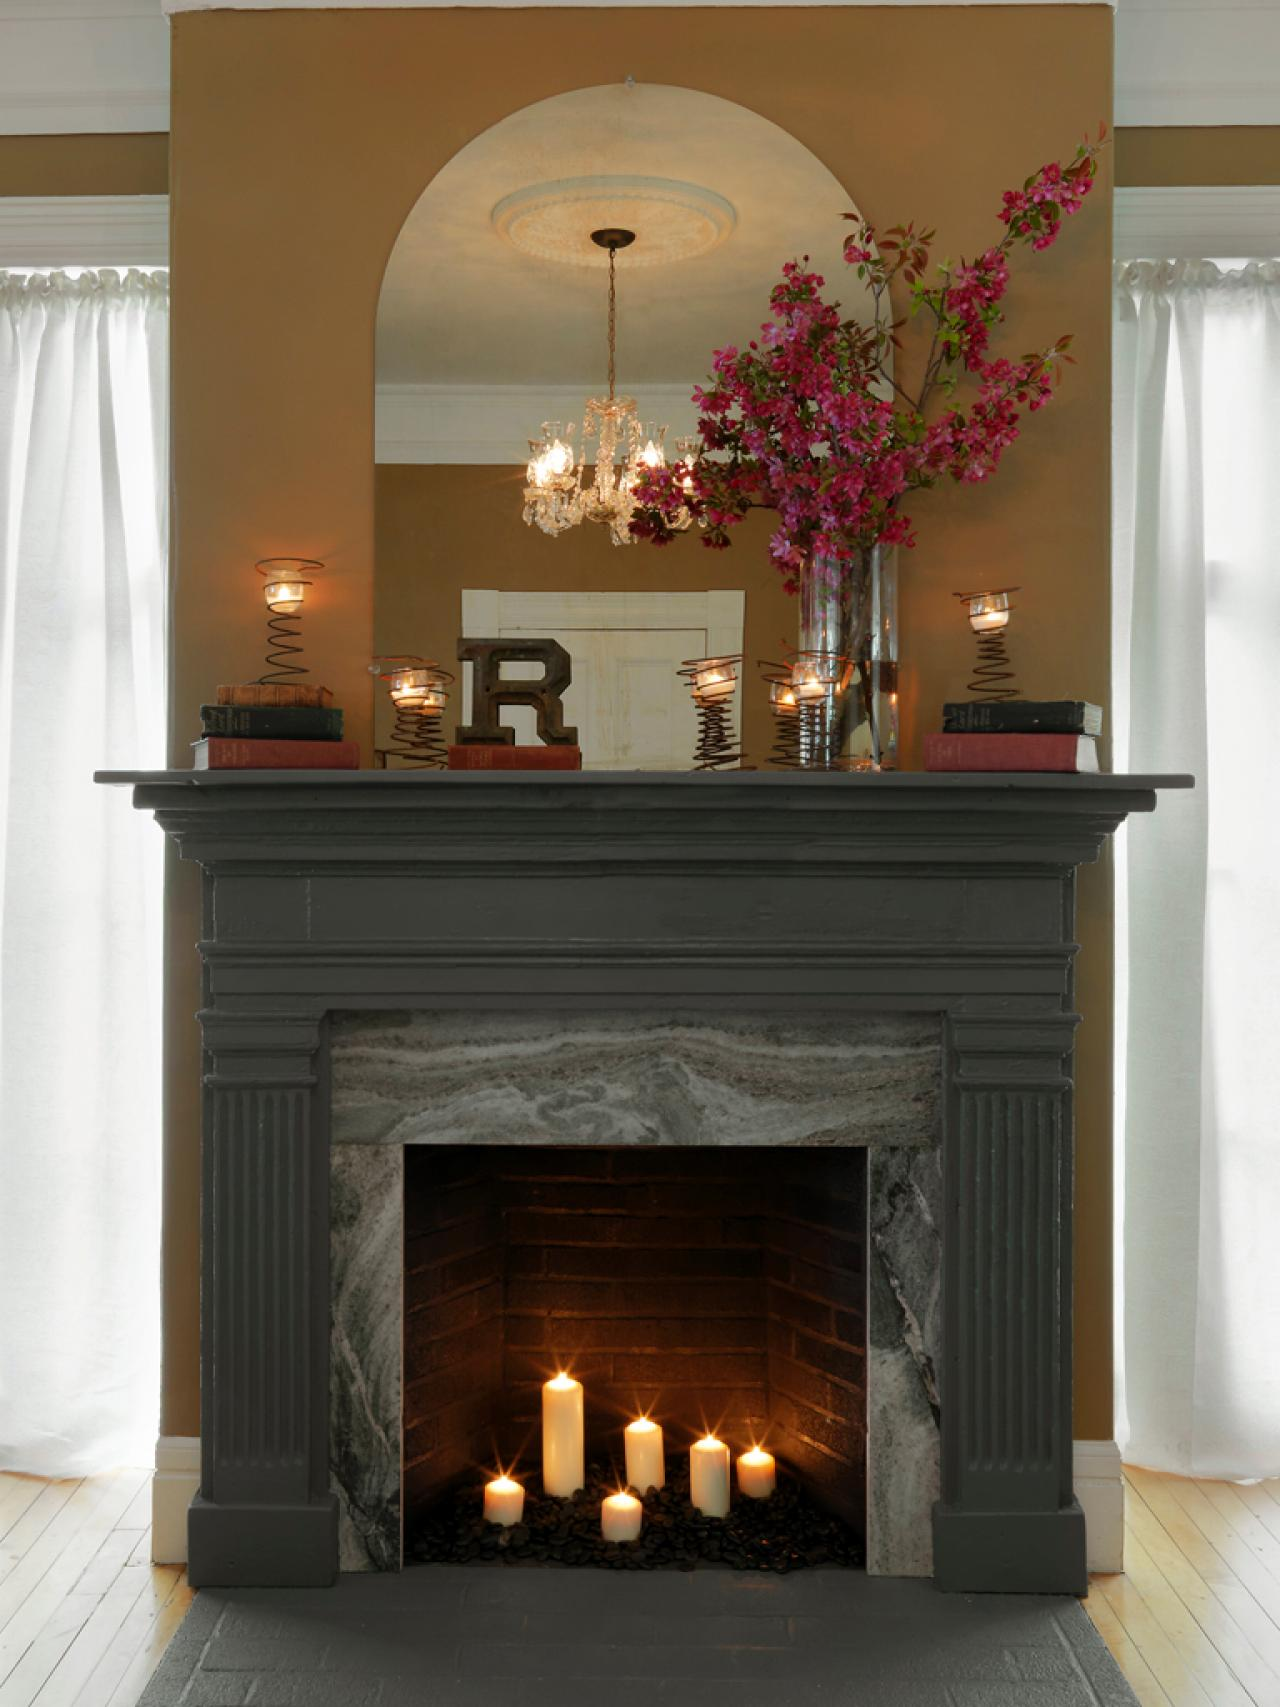 Diy fireplace mantel surround fireplace design ideas for Diy fireplace remodel ideas